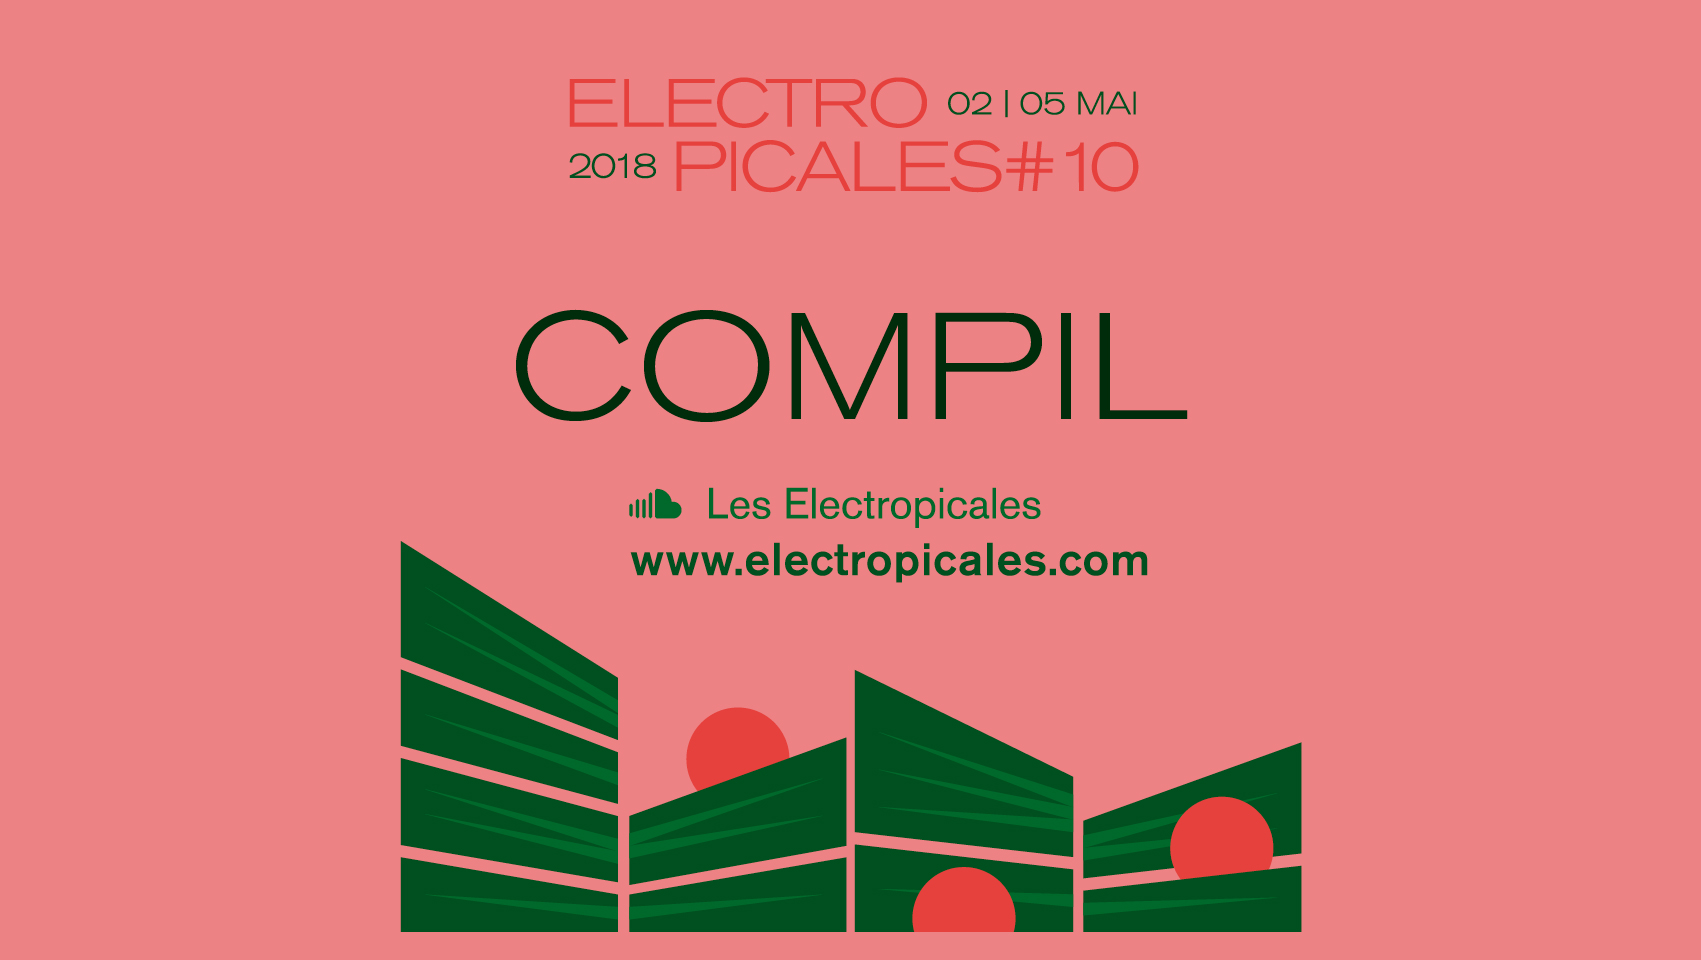 Compil electropicales 2018 soundcloud